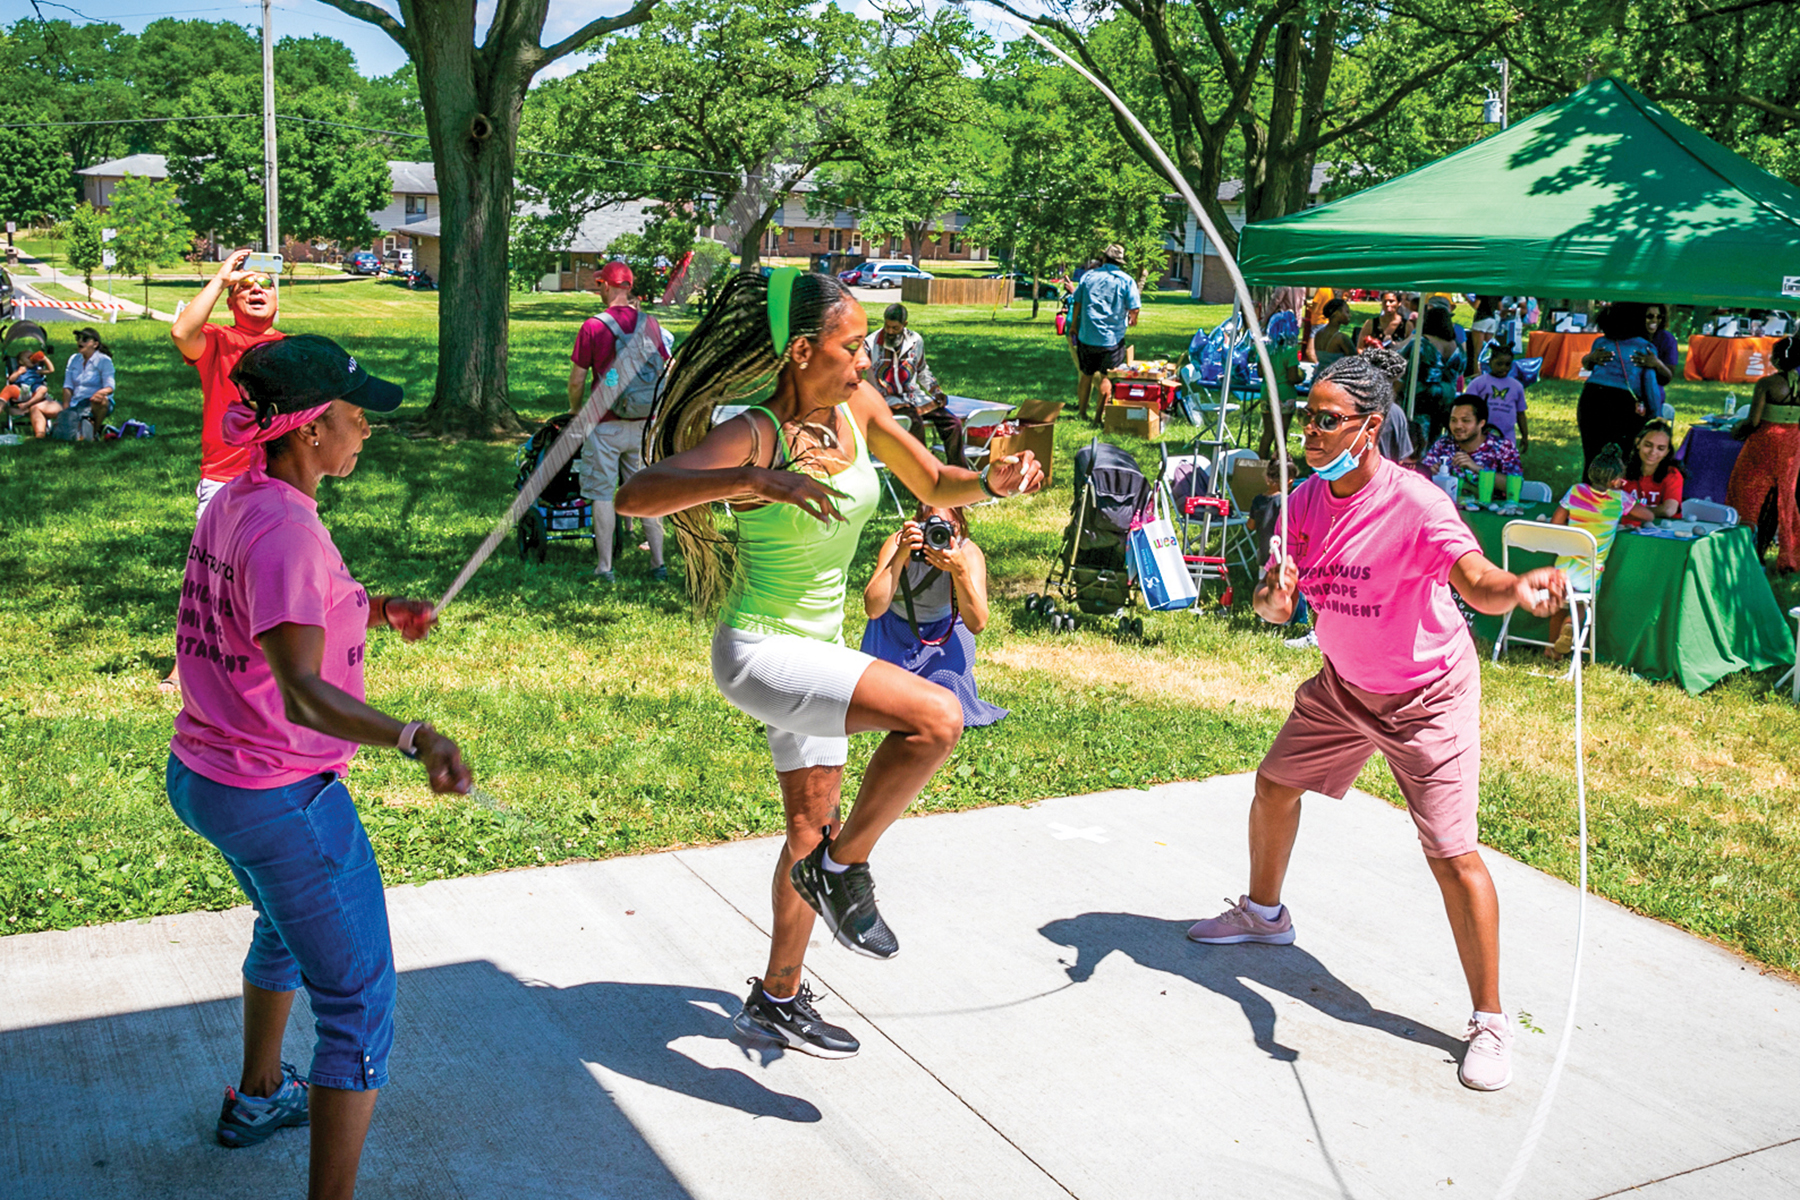 Juneteenth Commemorated for First Time as a Federal Holiday in Madison Sense of community is what Annie Weatherby-Flowers savors. It's deeply ingrained within her. That feeling of belonging and shared commitment to be together was birthed at Juneteenth celebrations in her hometown of Milwaukee.